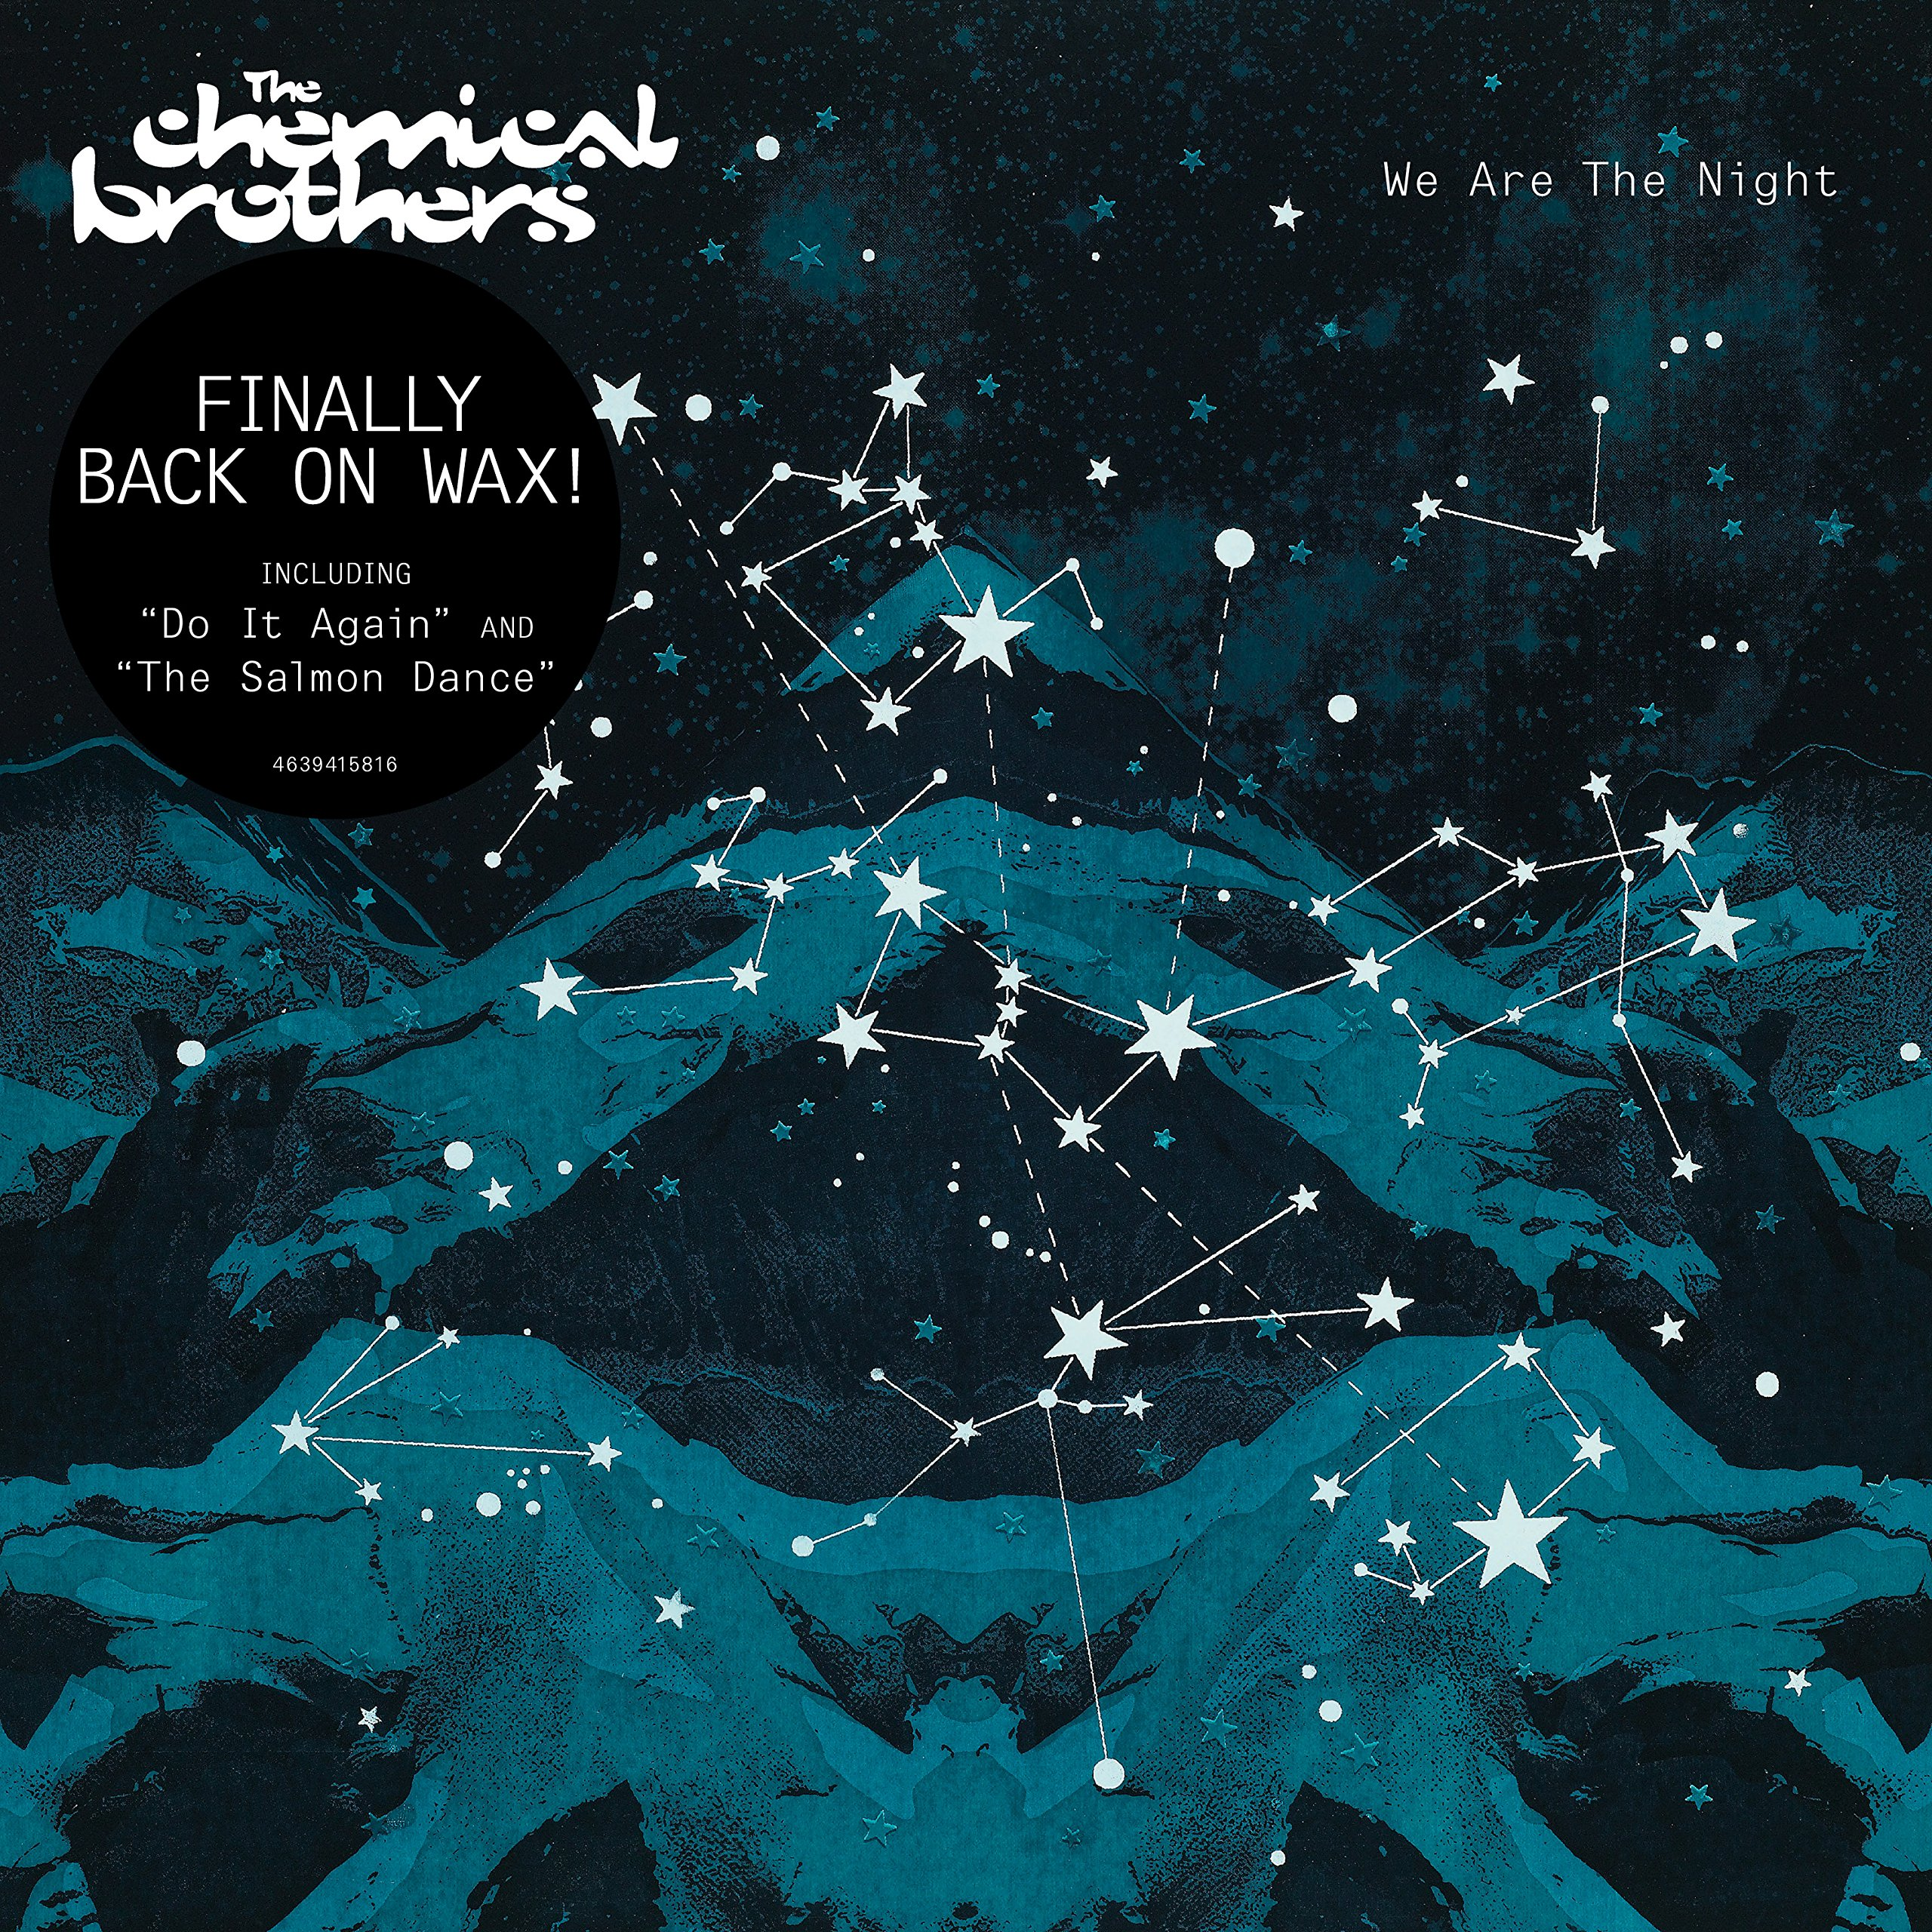 Vinilo : The Chemical Brothers - We Are The Night (Gatefold LP Jacket, Reissue, 2 Disc)